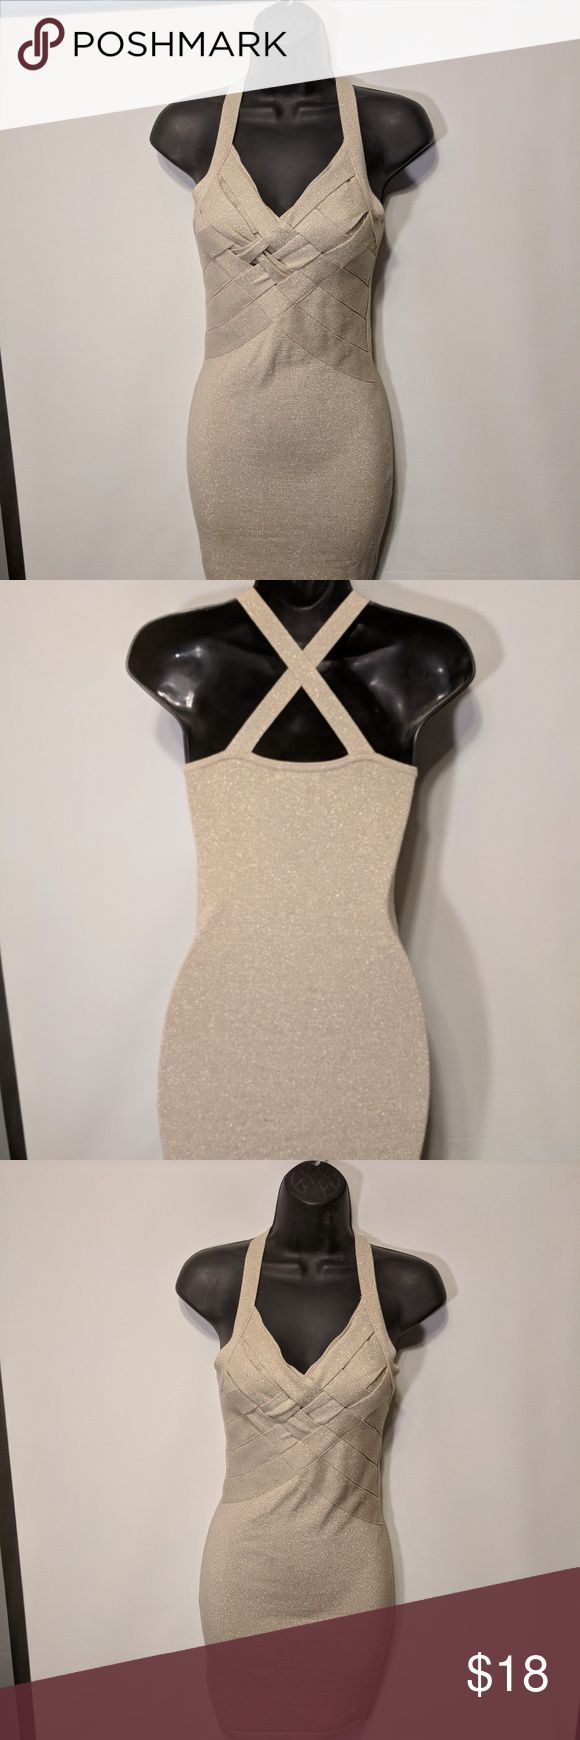 Charlotte Russe champagne cocktail dress. Xs Charlotte Russe champagne cocktail dress. Xs Charlotte Russe Dresses Midi